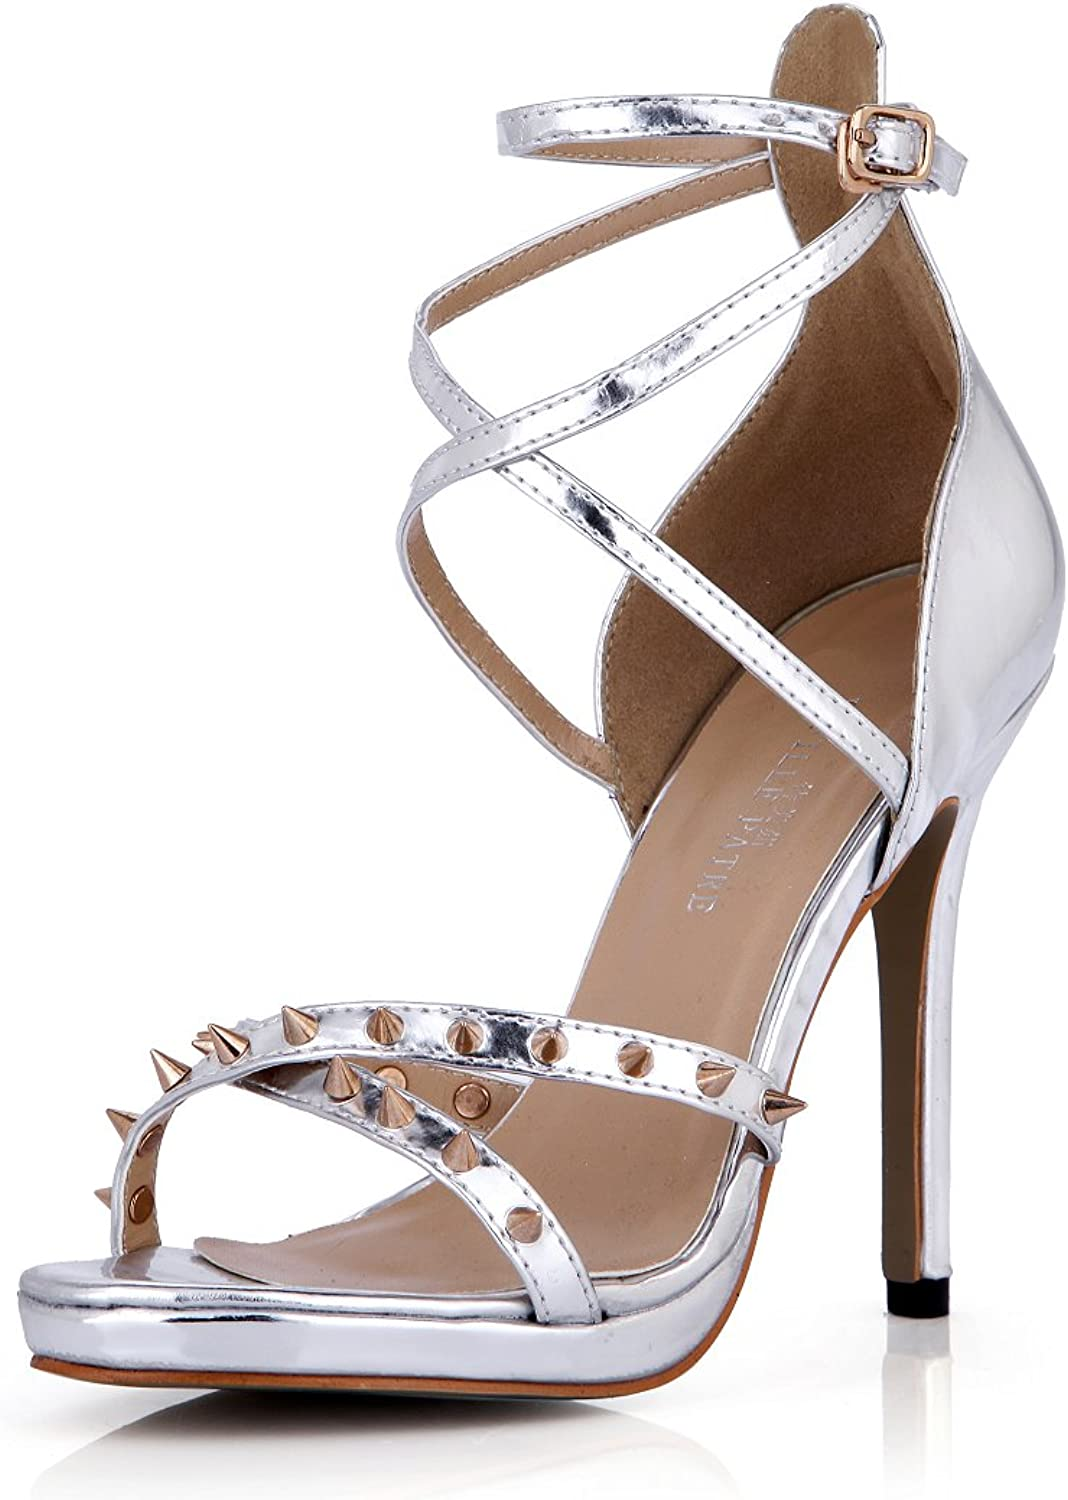 DolphinGirl Women Fashion Silver Rivet Open Toe Sandals High Heels with Ankle Strap Buckle Dress Pumps Stiletto shoes SM00098